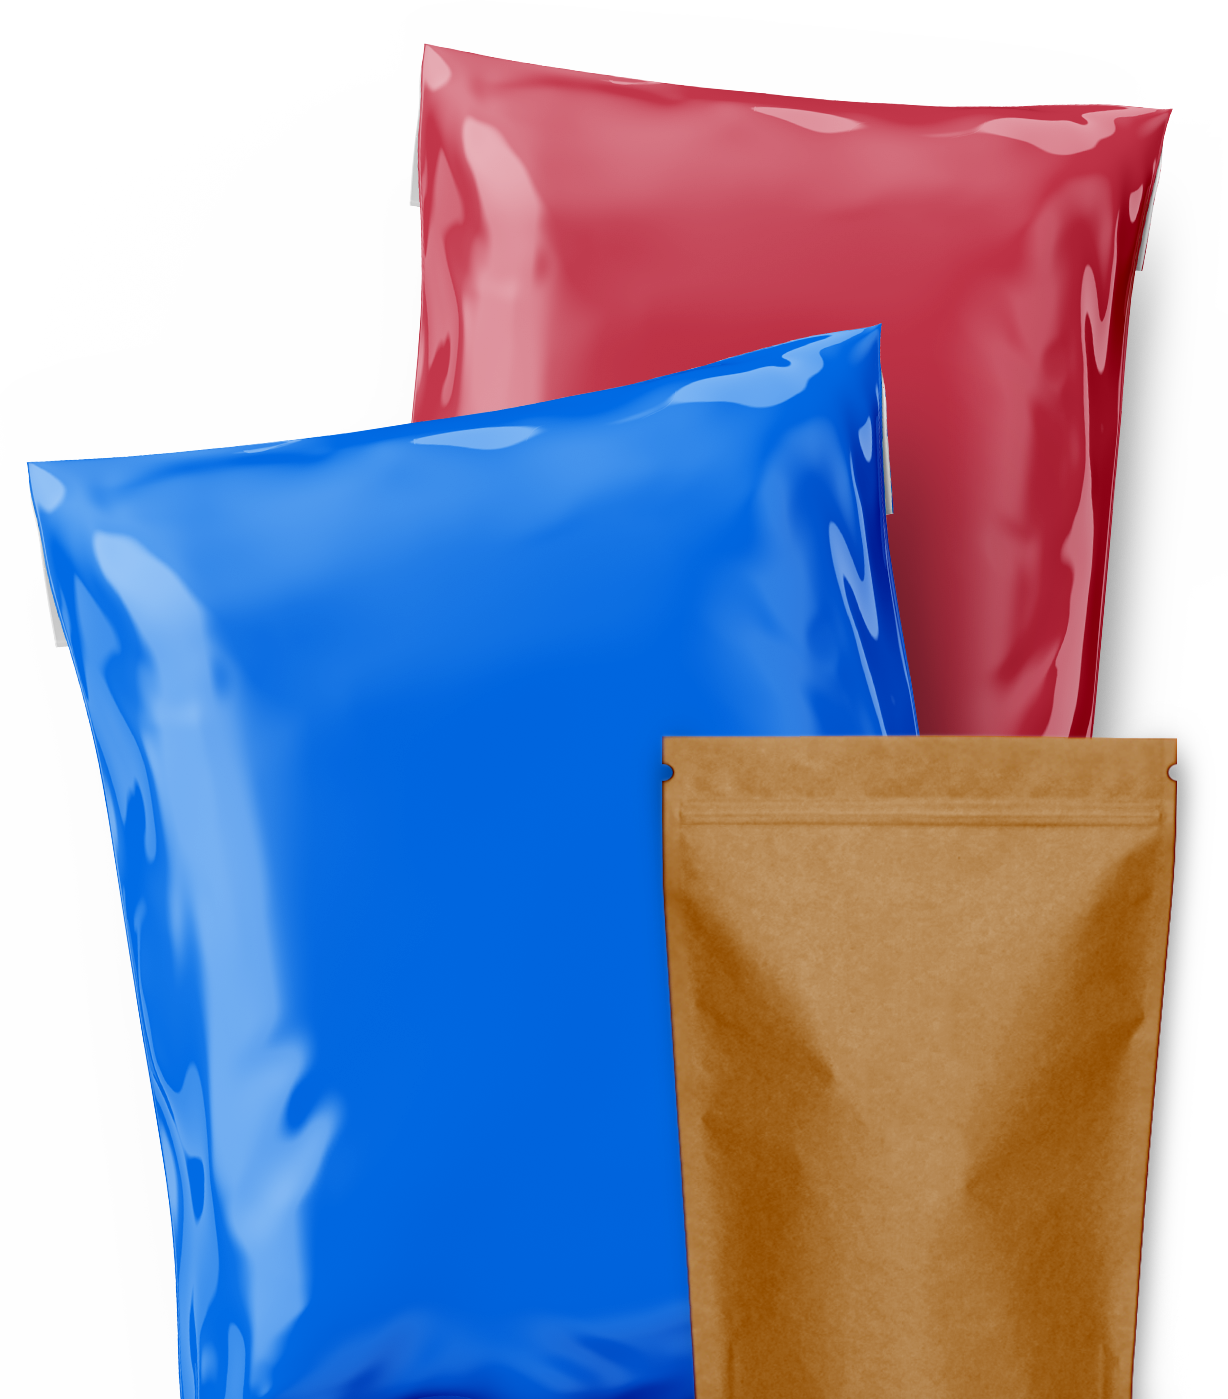 Polybags, polythene bags, mailing bags, printed carriers, envelopes, polythene film, poly bags, printed carrier bags, biodegradable bags, bubble wrap, boxes, plastic bags, packaging